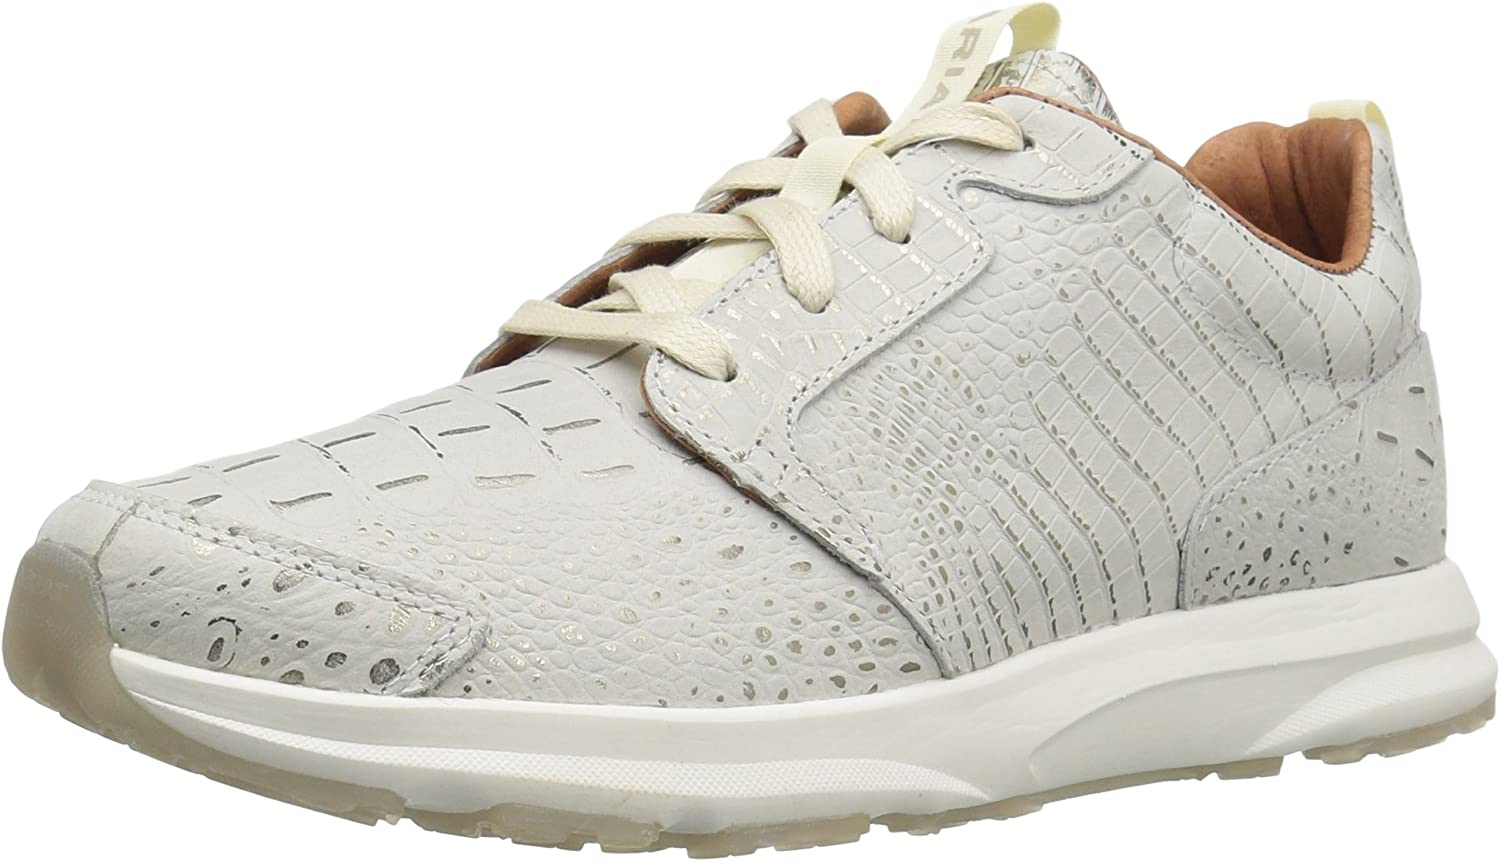 Ariat Women's Fusion Athletic shoes, Electric Crocodile, 10 B US